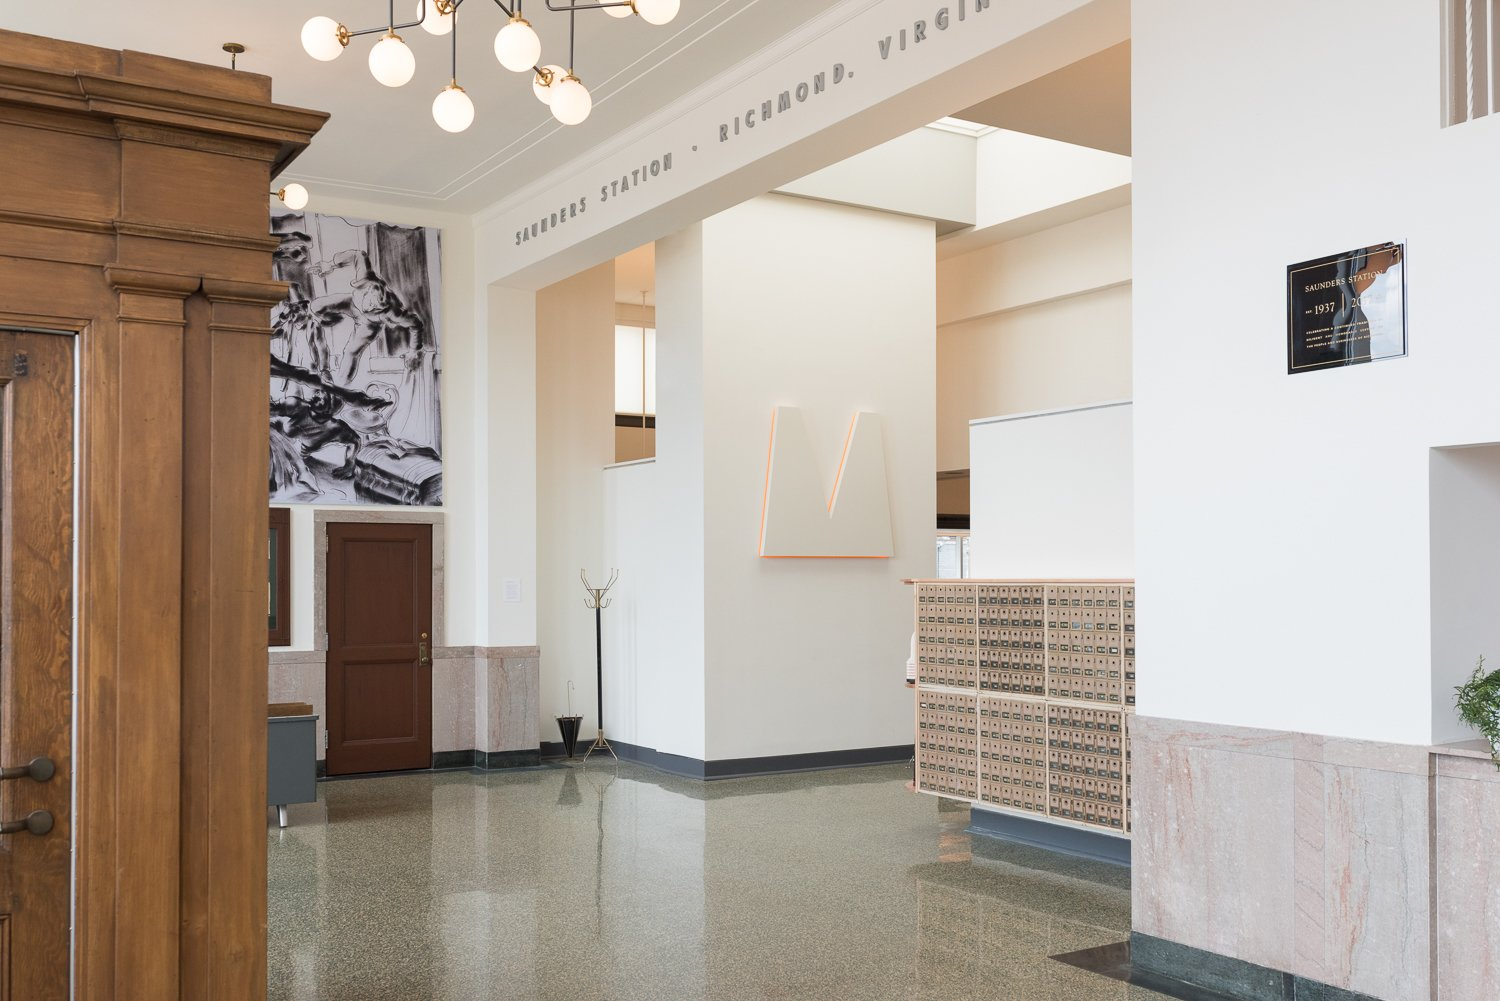 Photo 3 of 16 in A Historic U.S. Post Office Is Transformed Into a ...